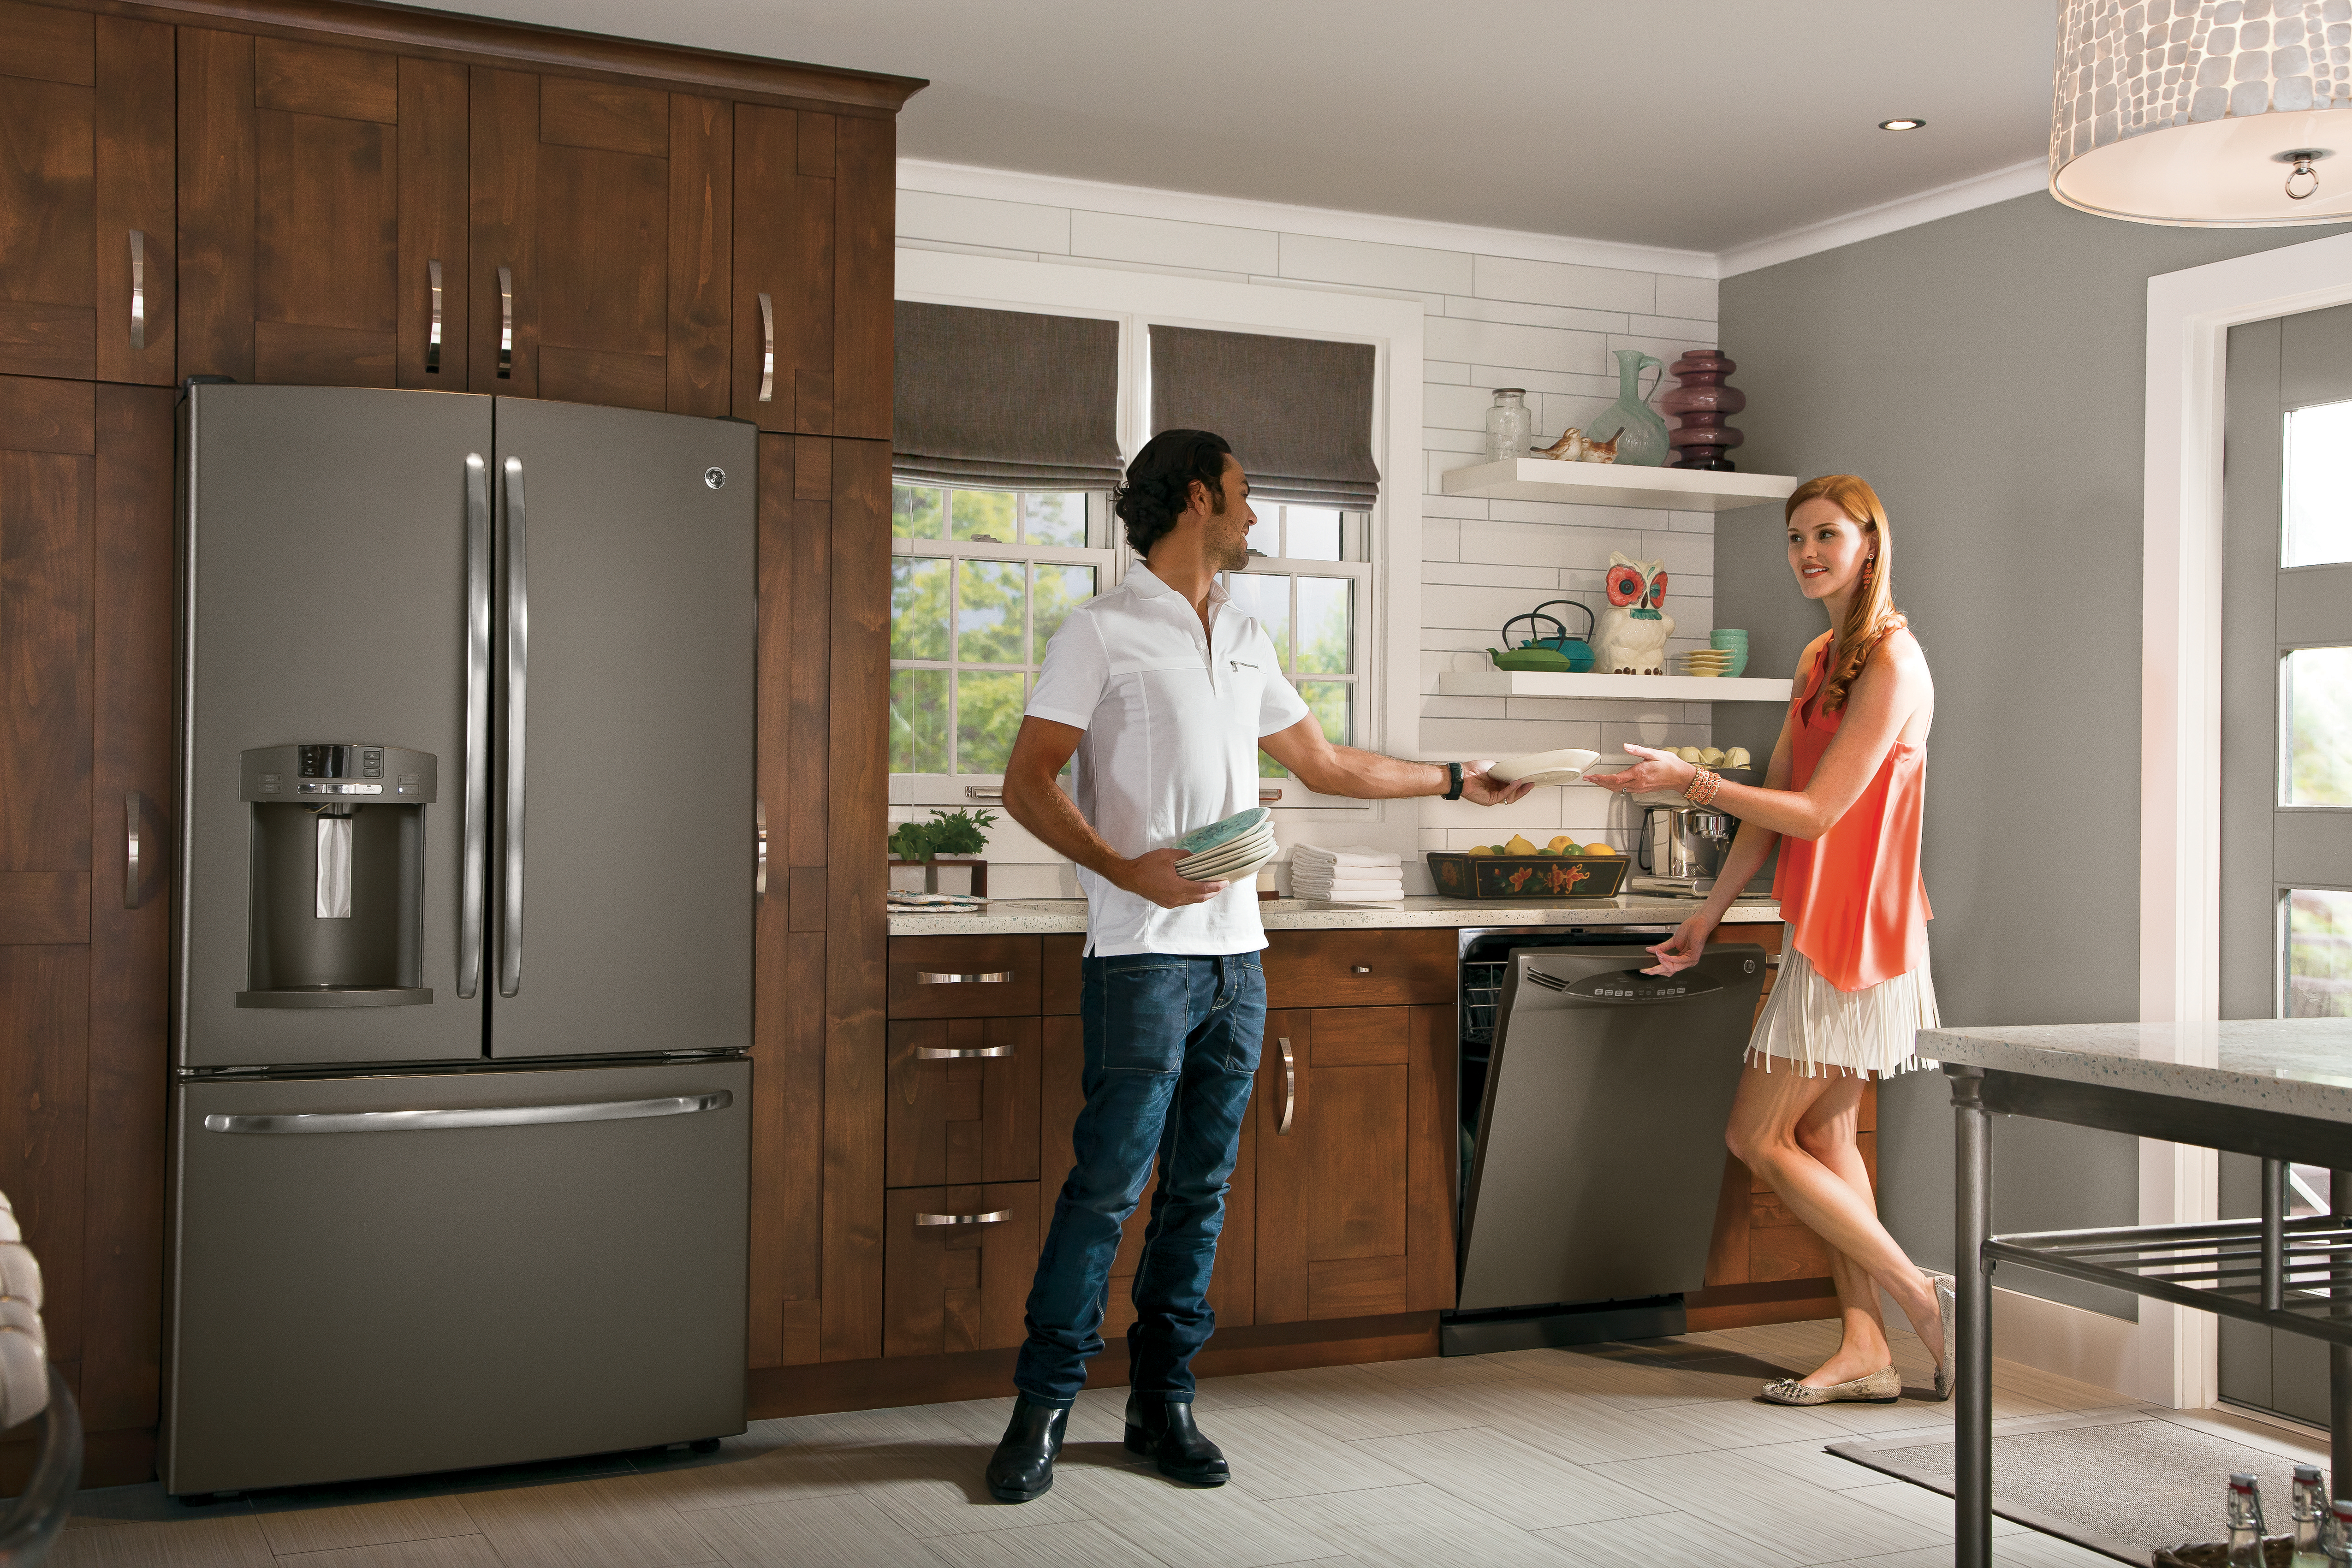 Four Consumer Trends Shaping the Future of Home Appliances